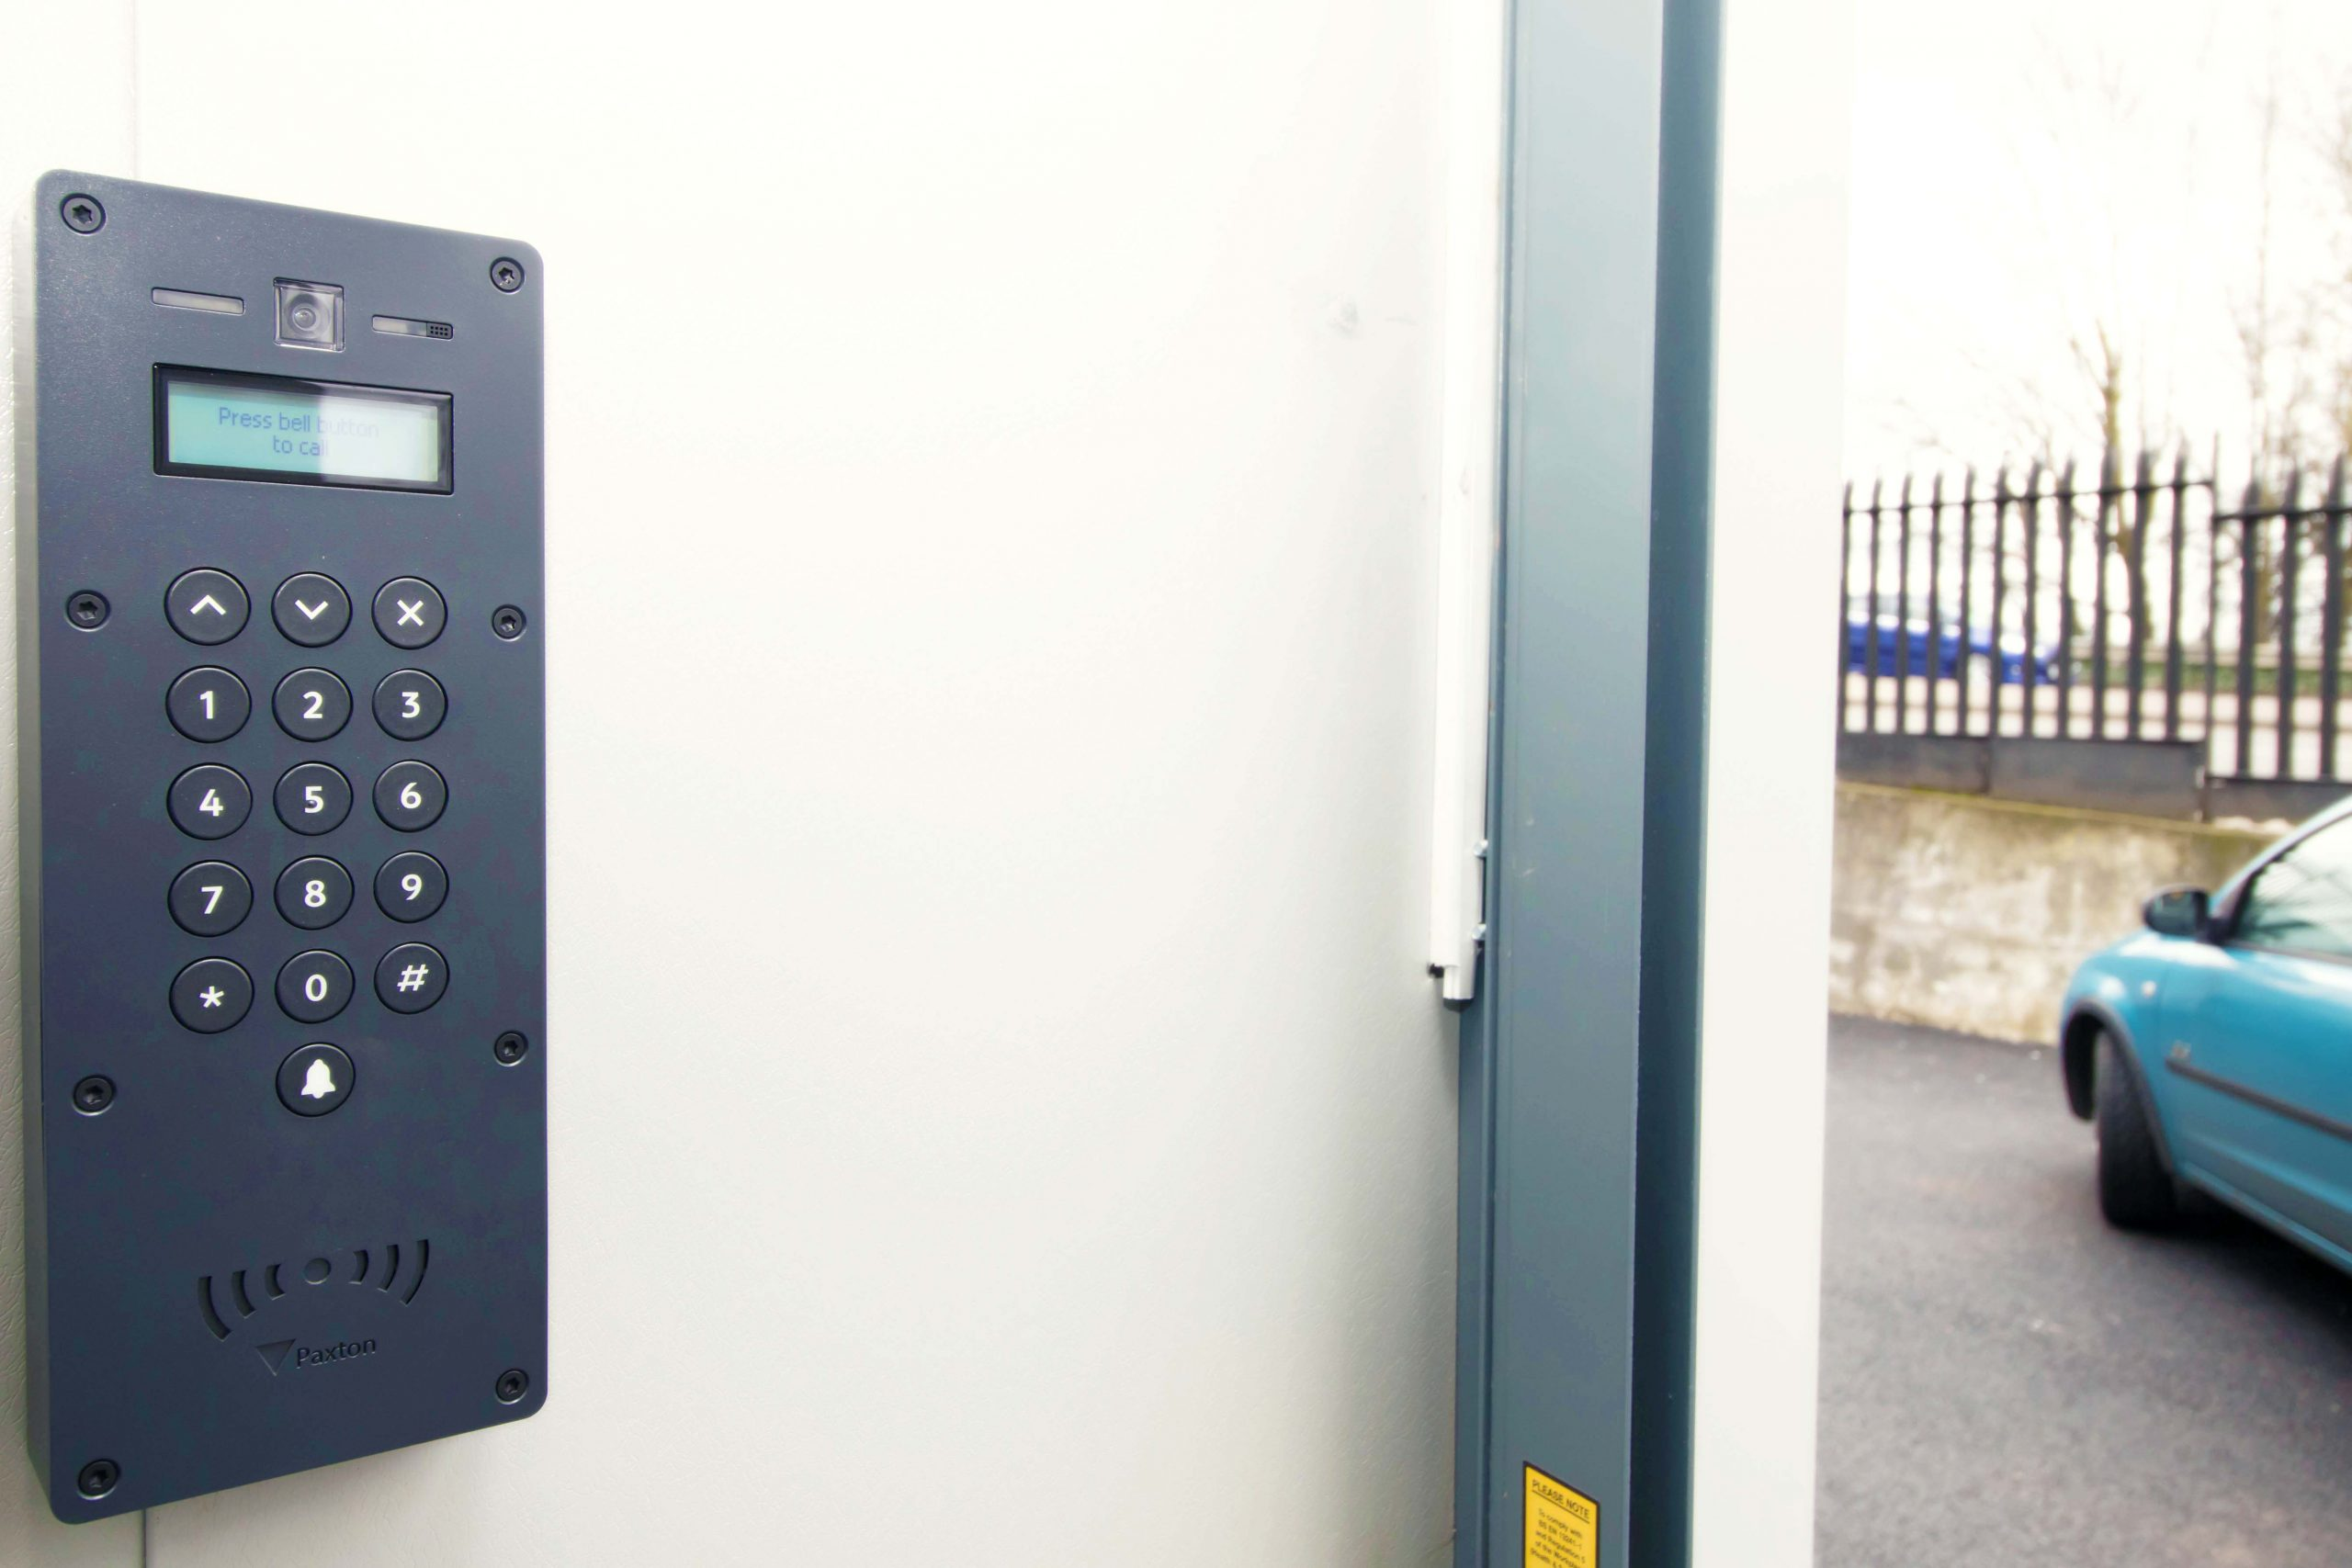 An access contril system on an external door, leading our onto a road.